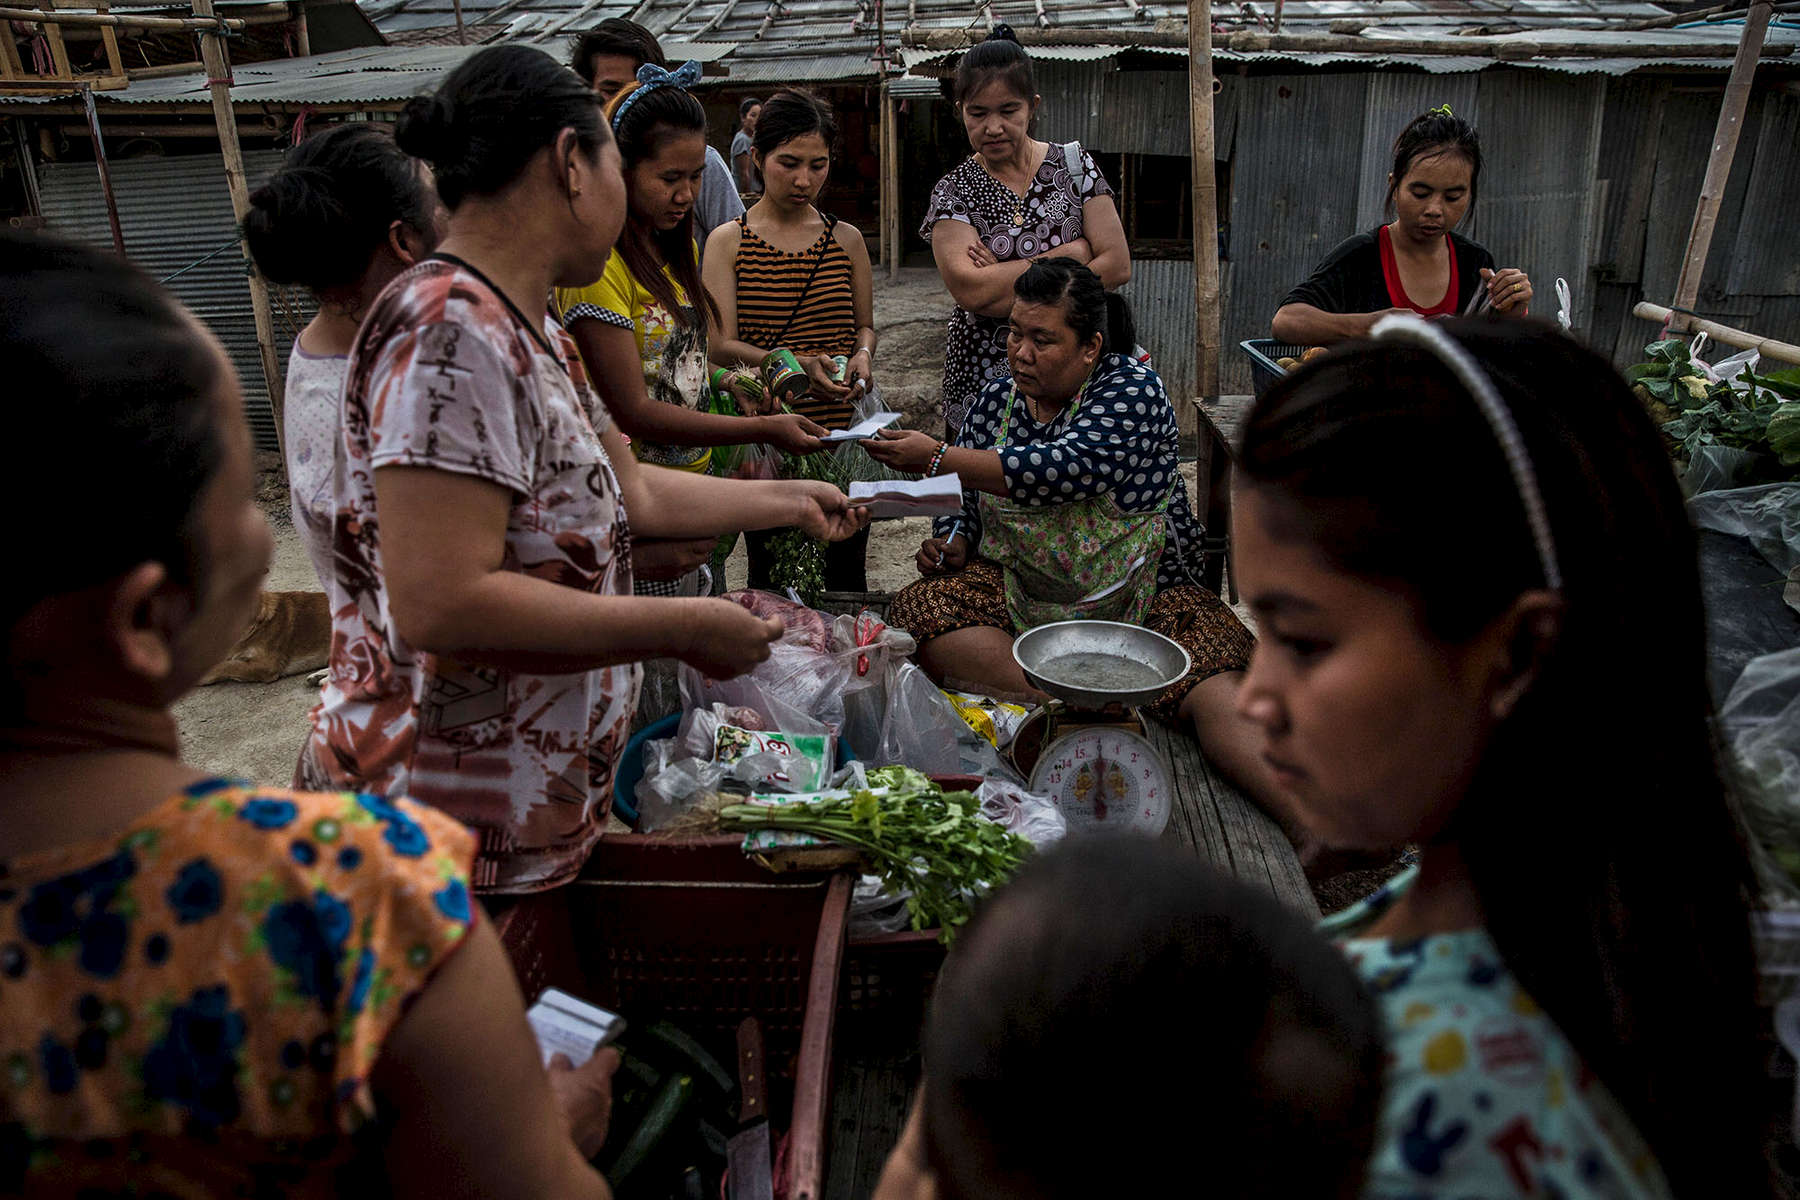 Women purchase produce from a mobile vendor that services migrant worker camps.